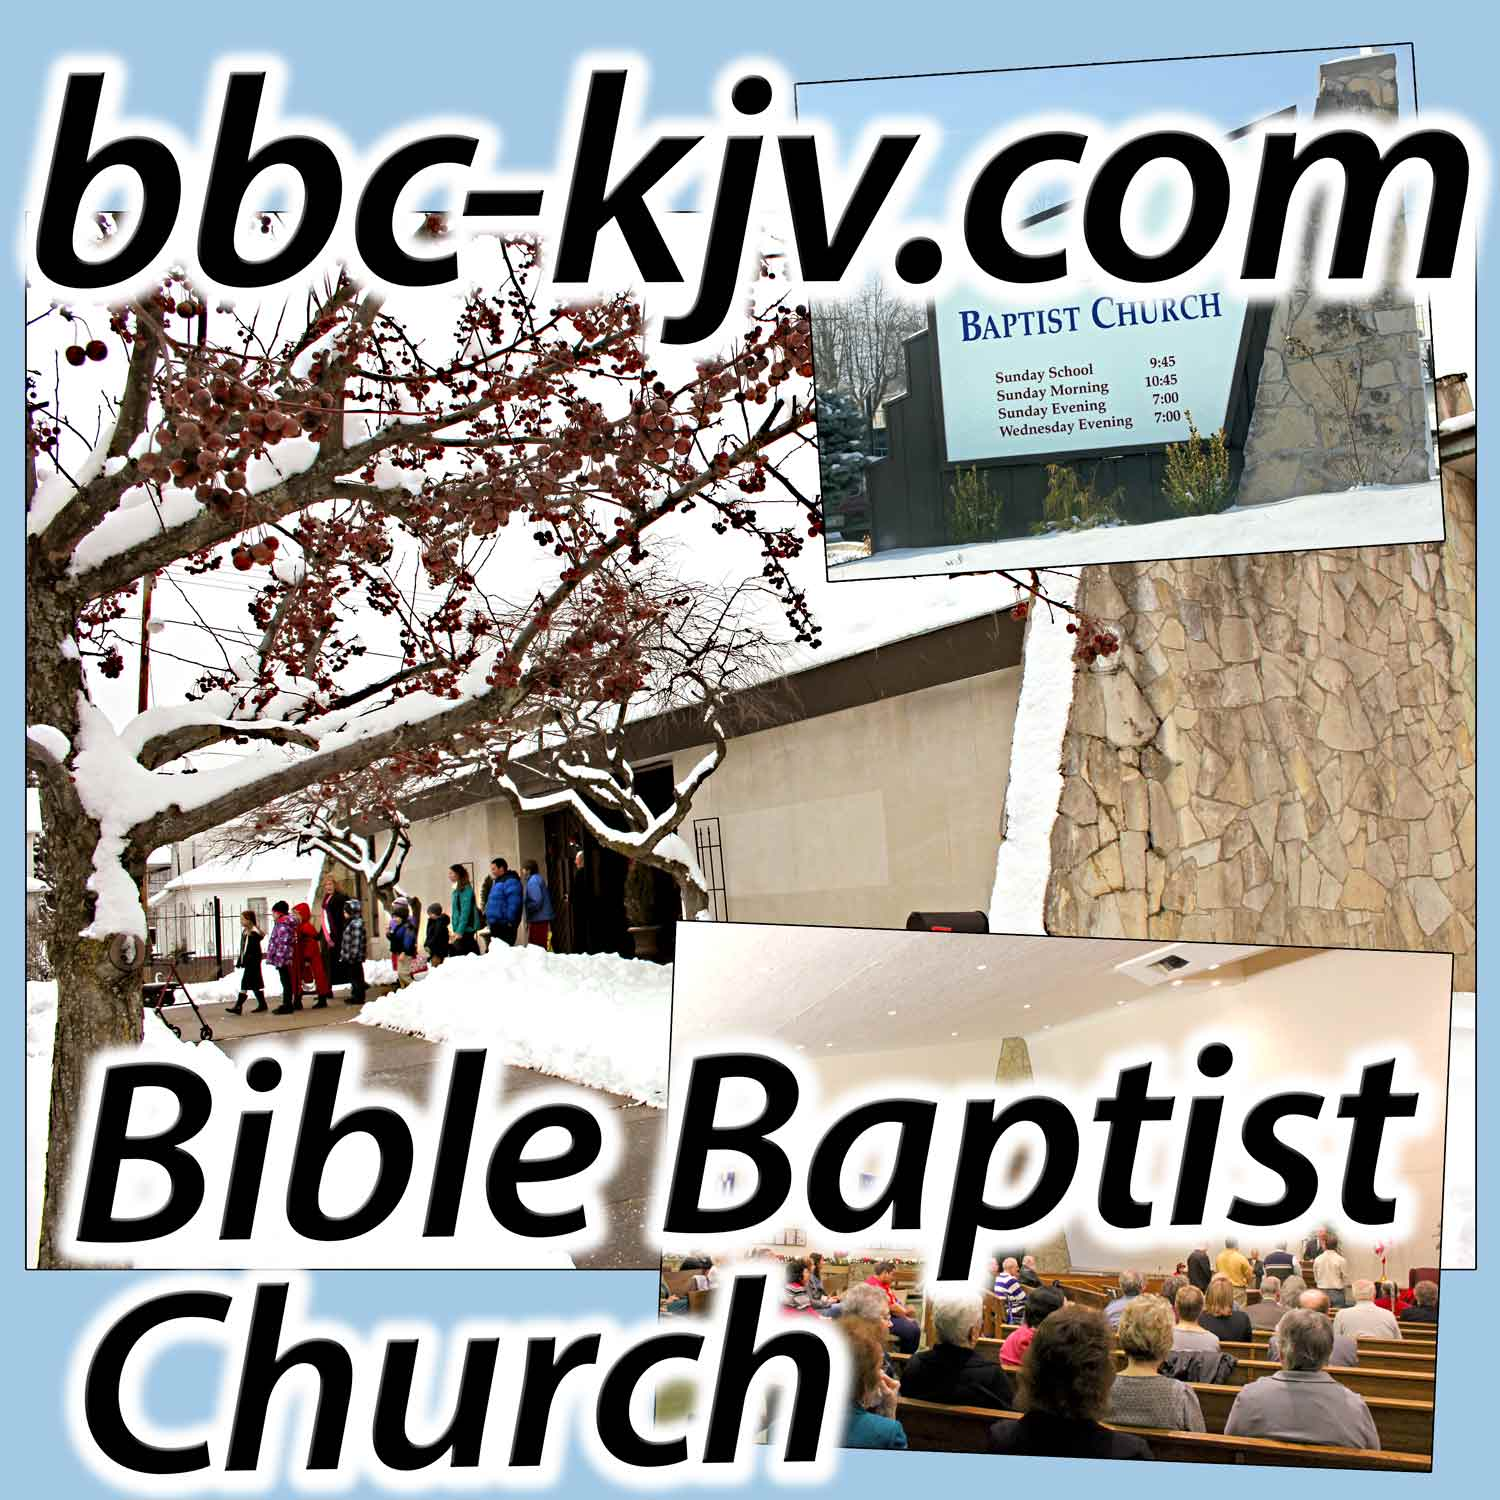 Bible Baptist Church - Byesville, Ohio